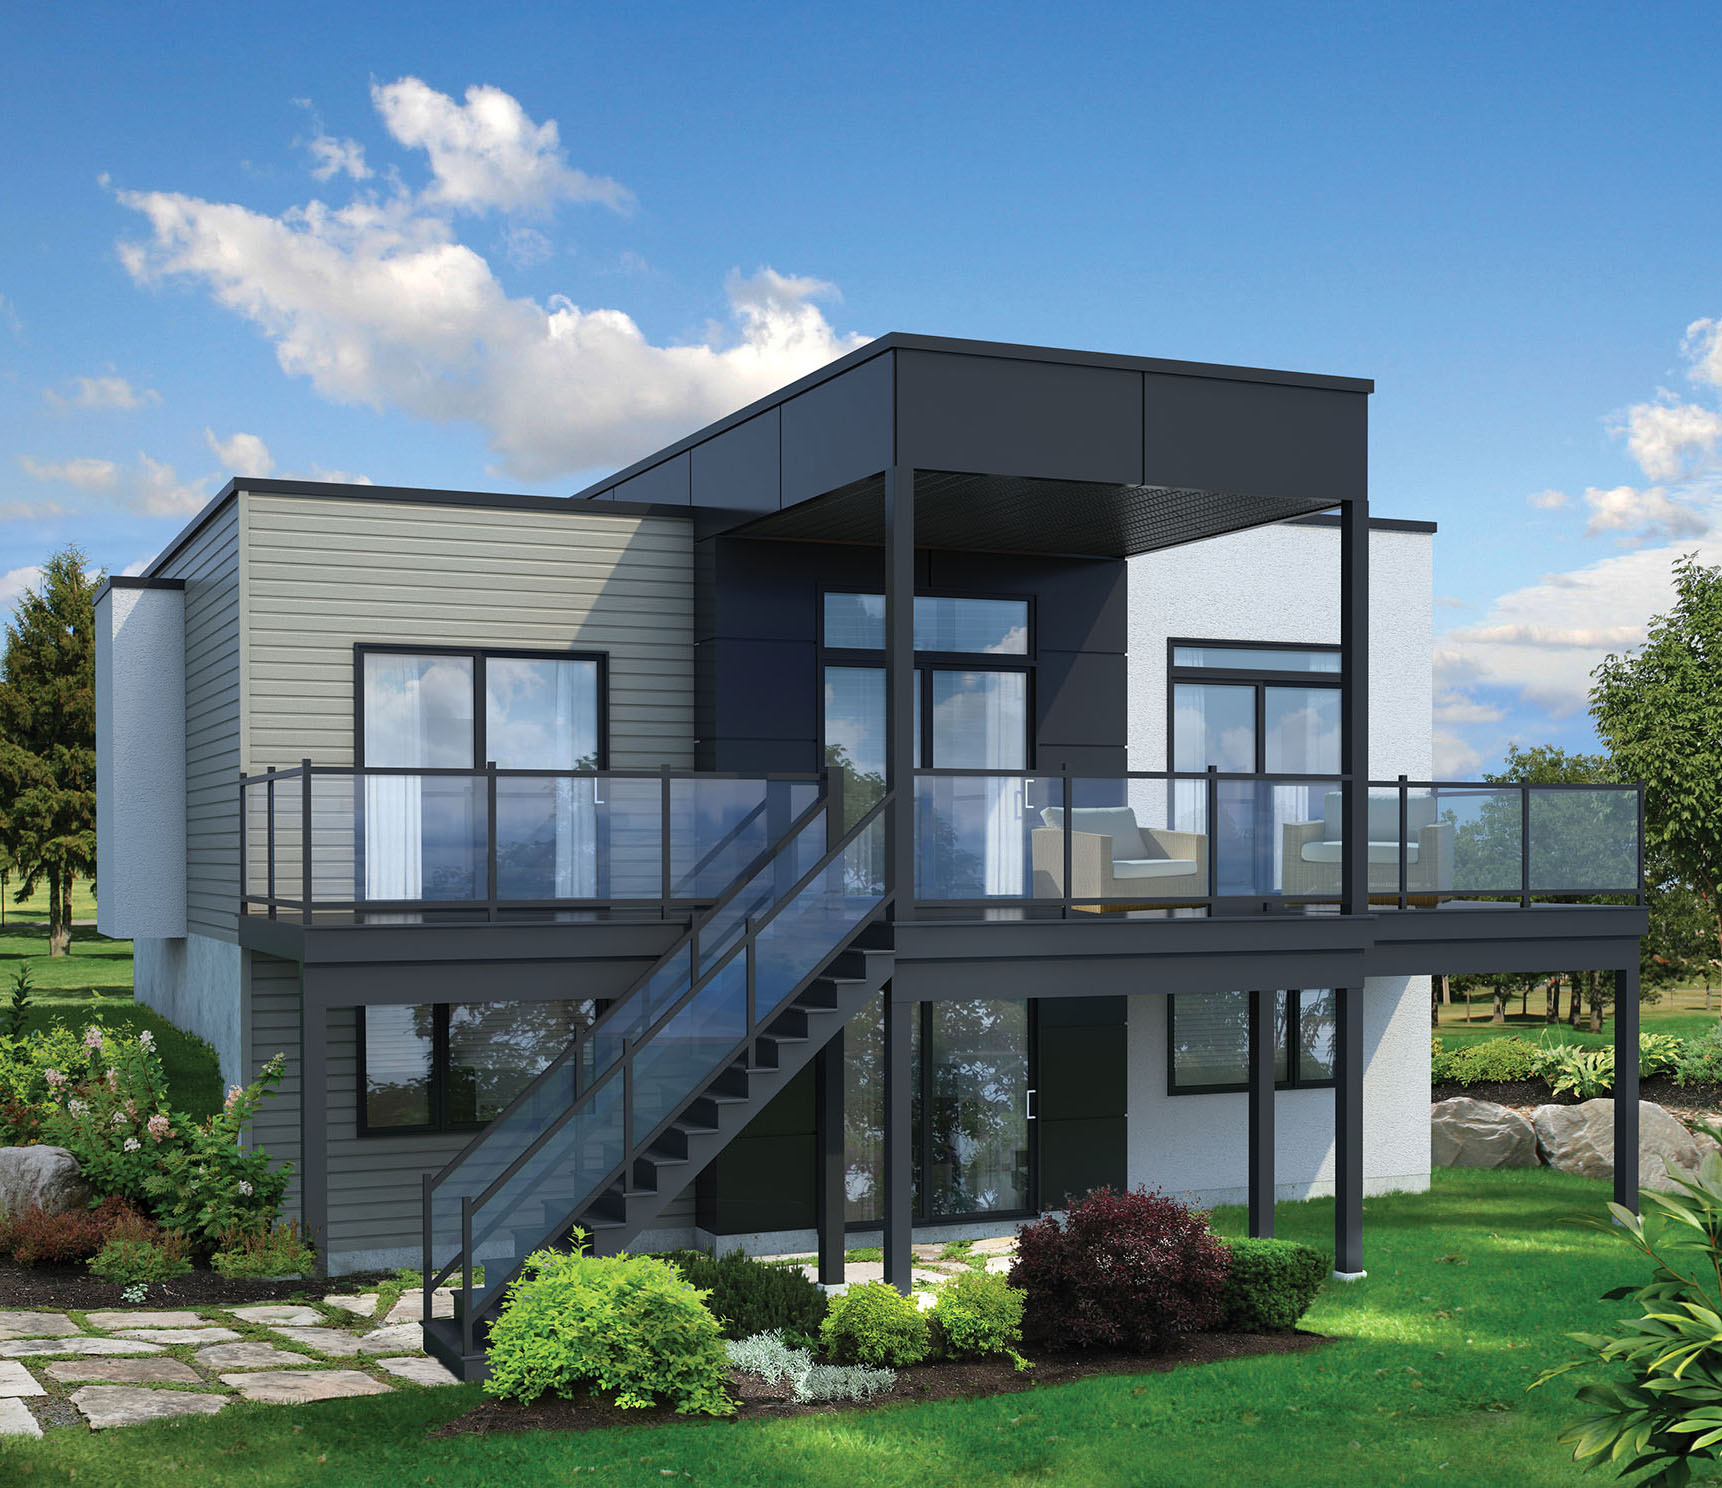 2 bed modern house plan for sloping lot 80780pm for Sloped lot home designs